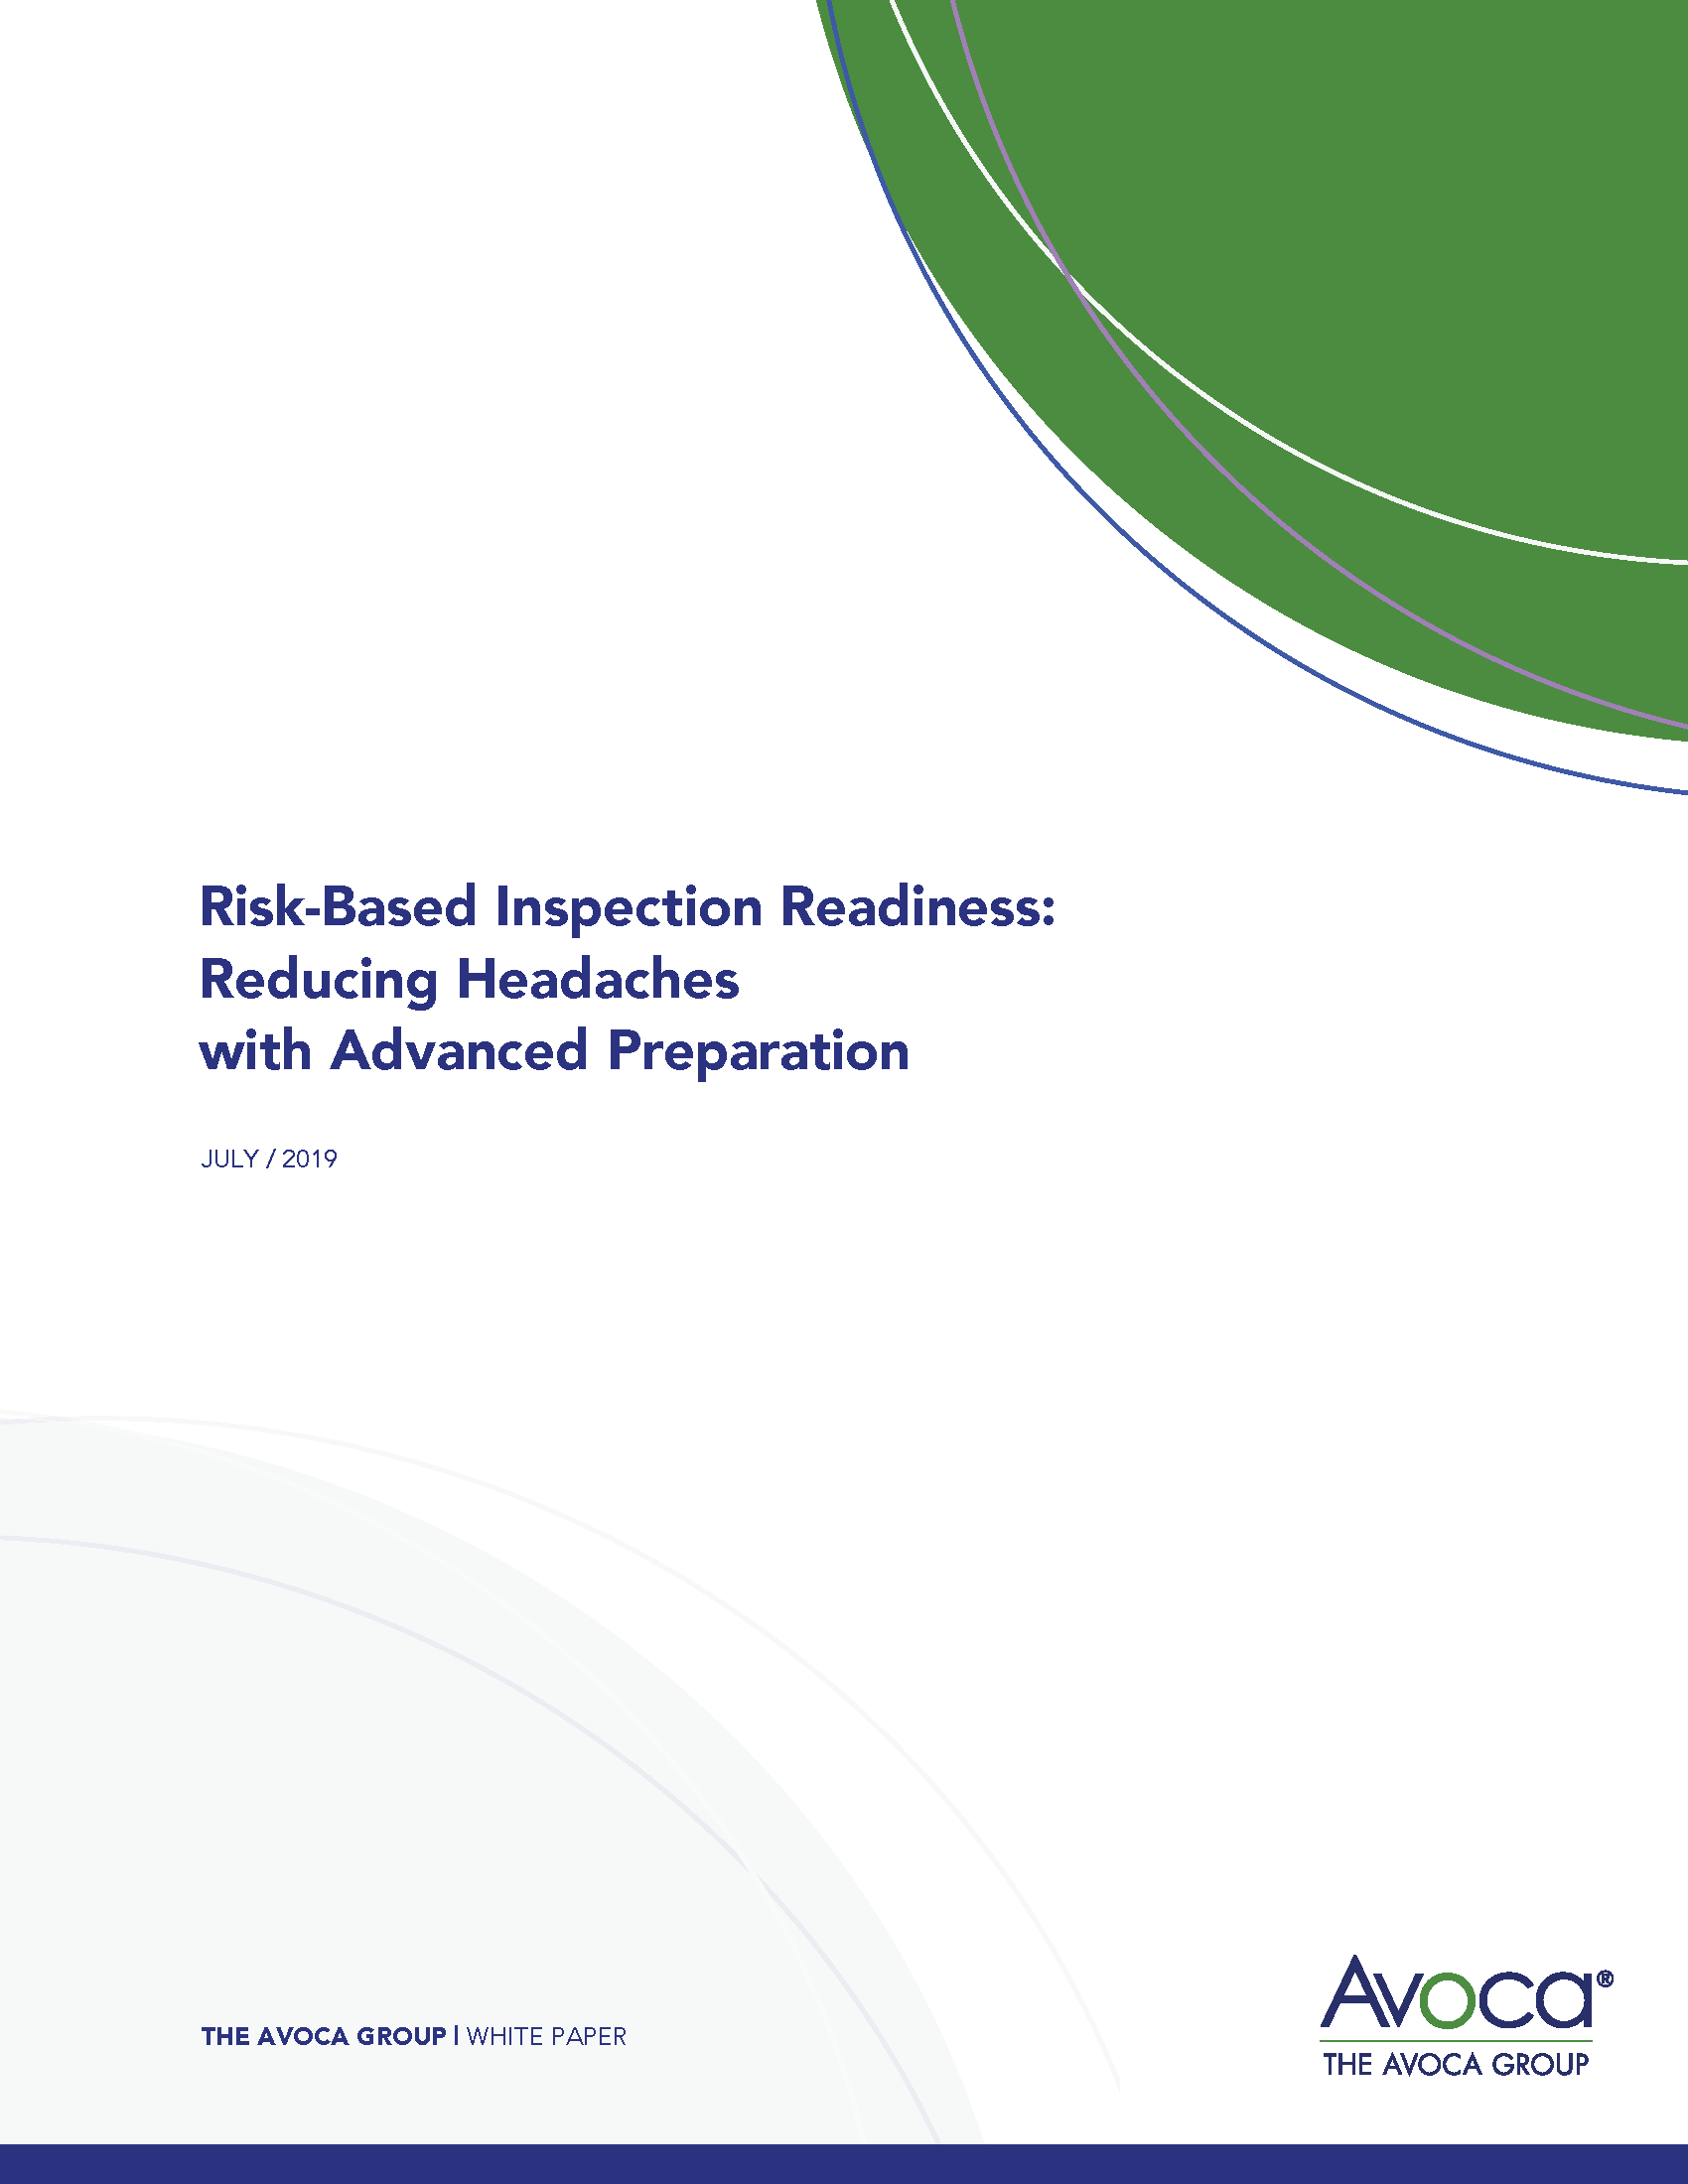 Risk-Based Inspection Readiness